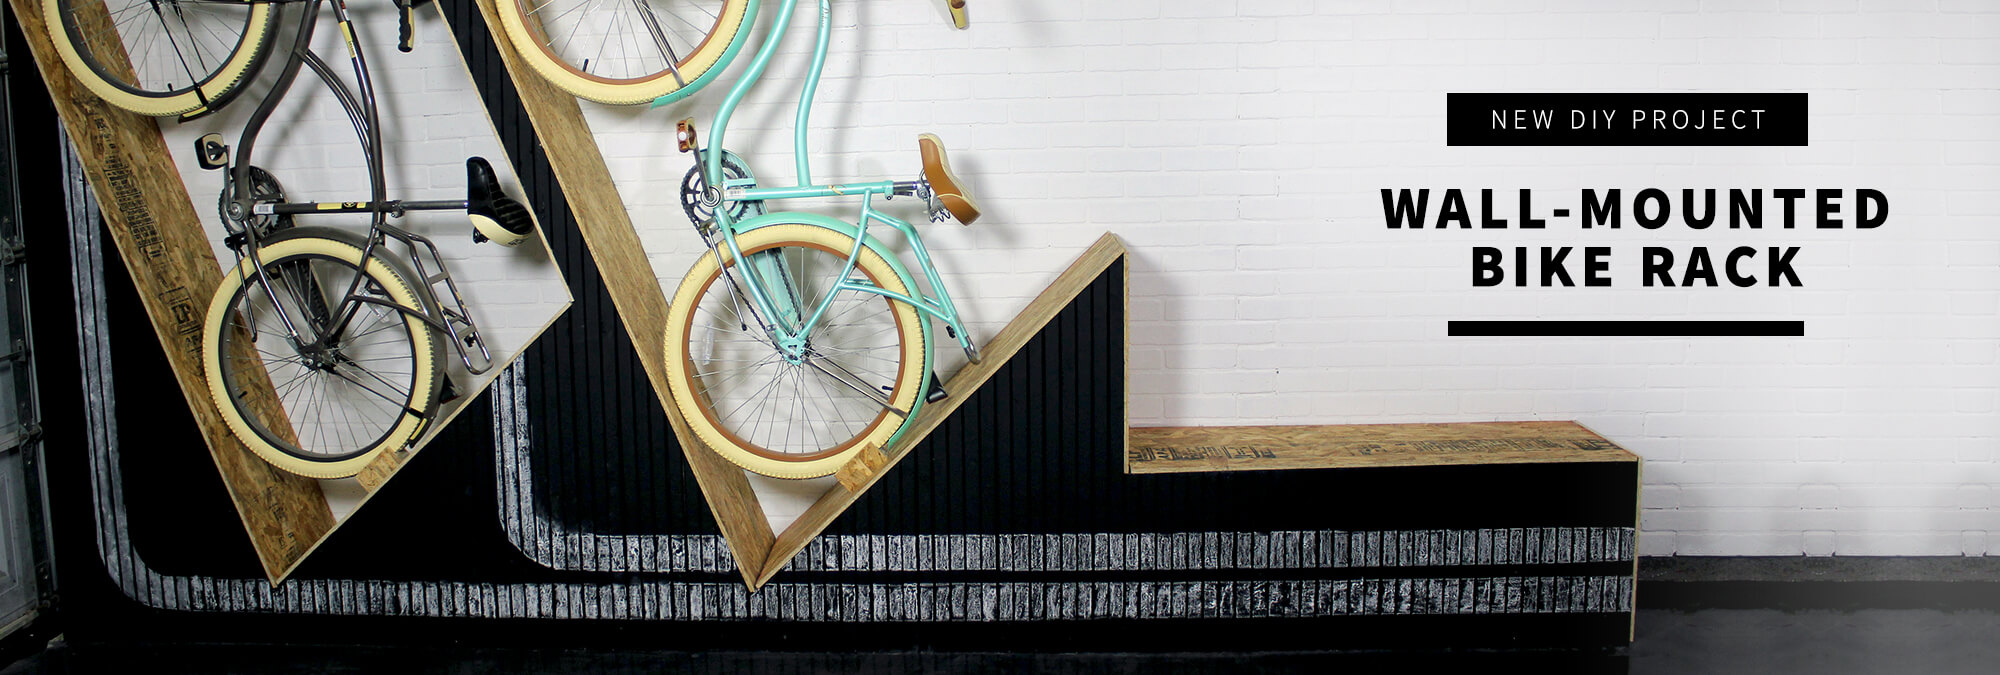 New DIY Project - Wall Mounted Bike Rack